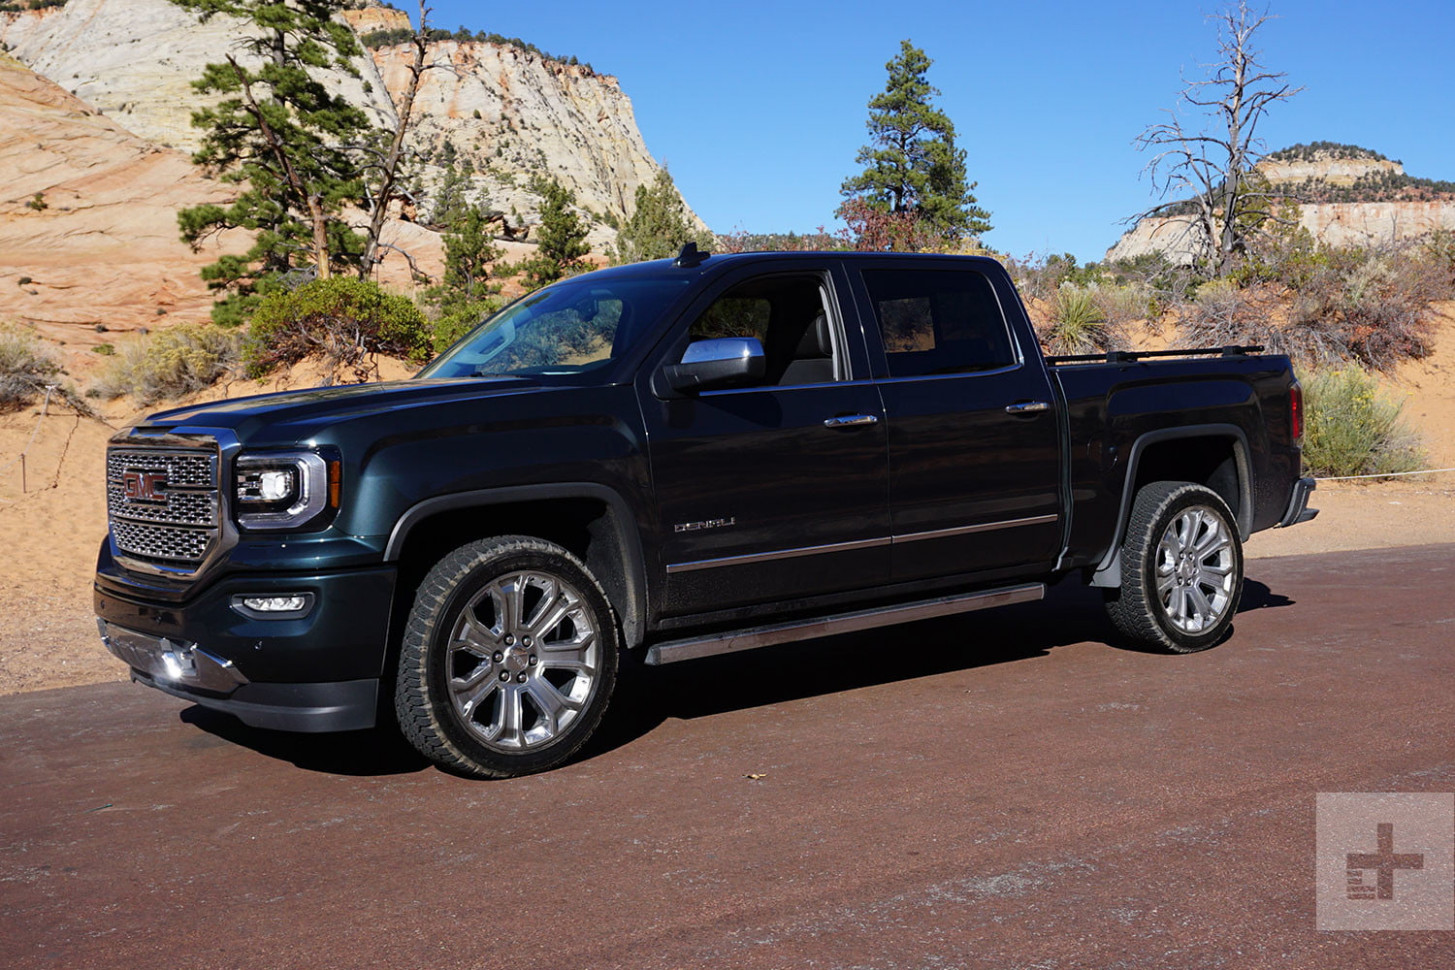 11 Gmc Sierra 11 Denali Review Owner's Manual New 11hd For ...